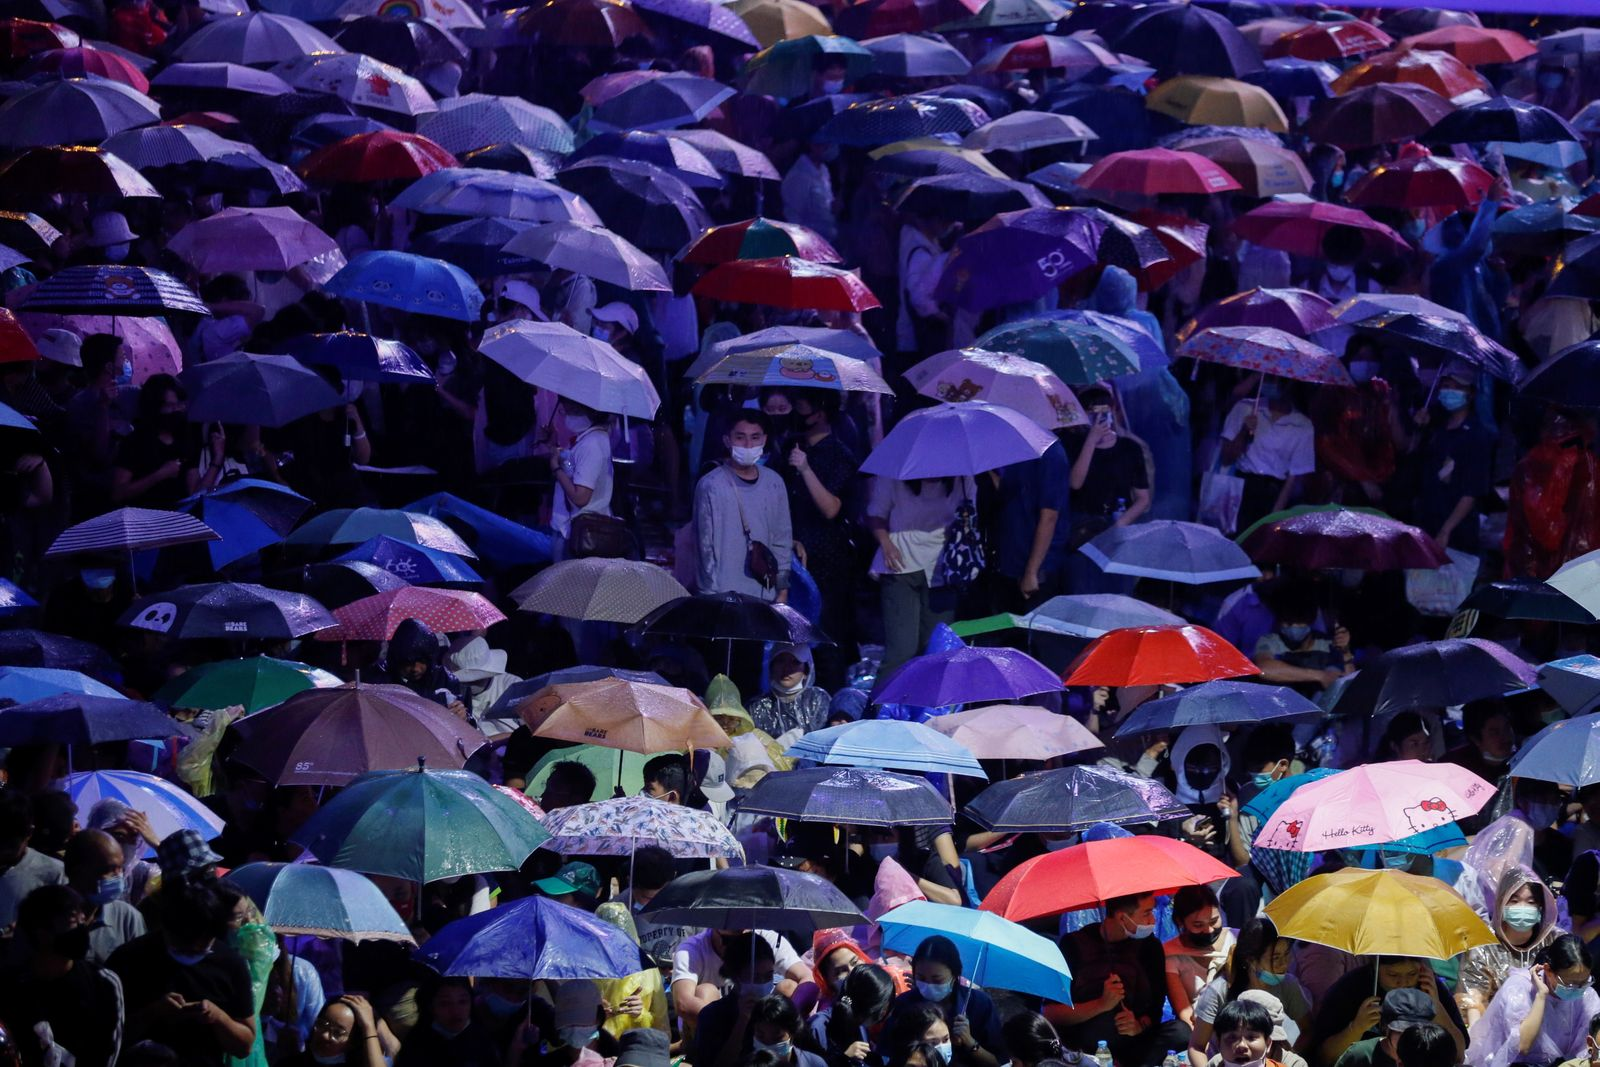 People cover themselves with umbrellas during anti-government protests, in Bangkok